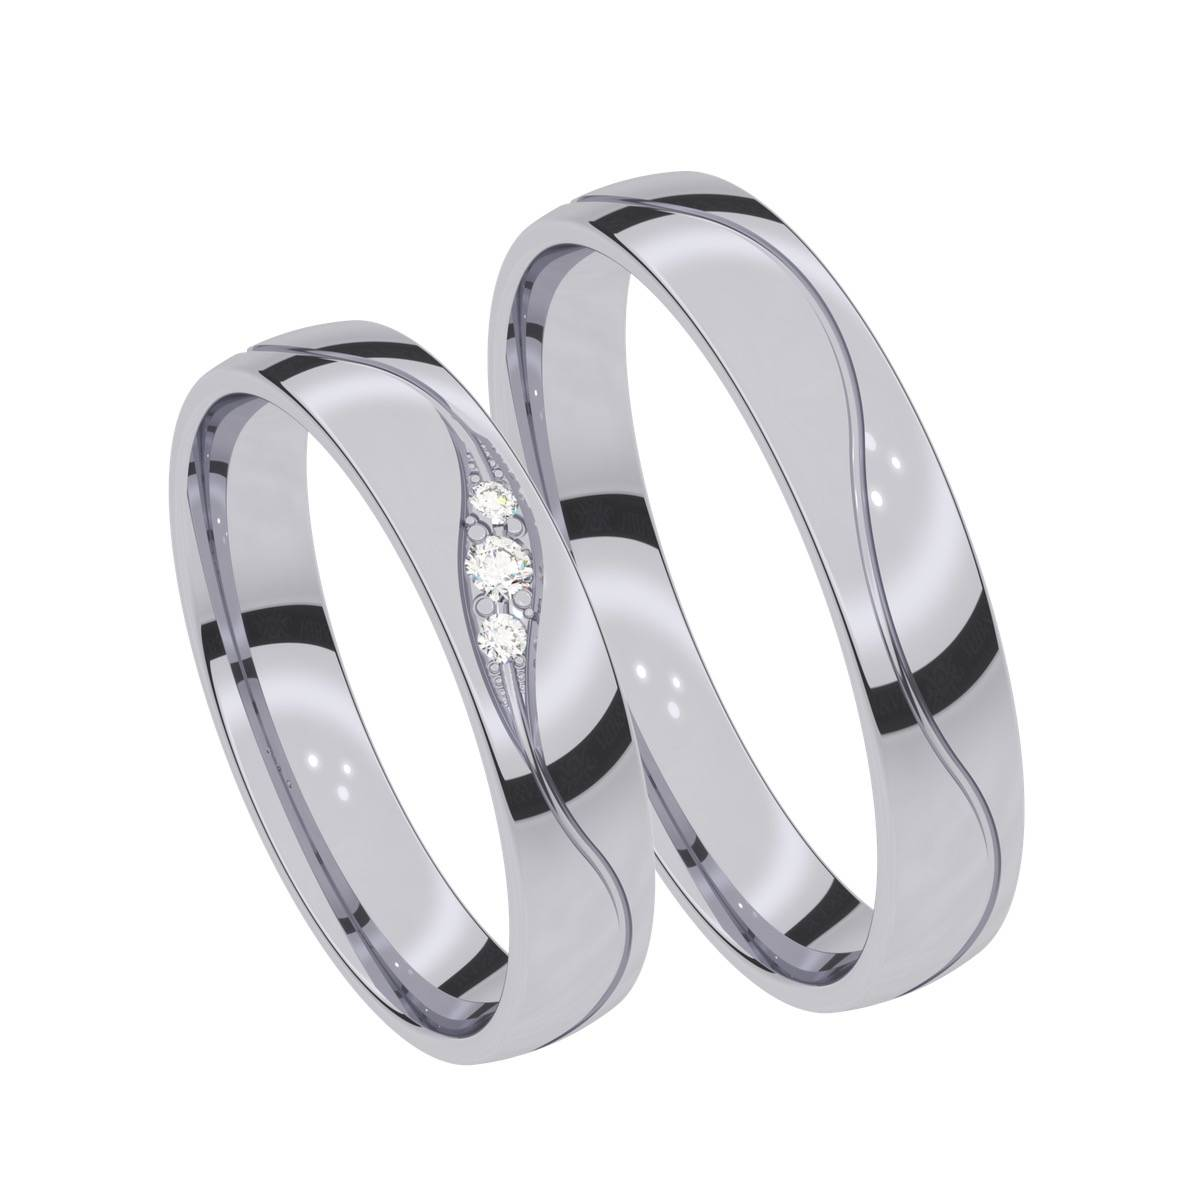 Juwelier Jan Maes - Trouwringen - Verlovingsringen - Juwelen - House of Weddings - 10